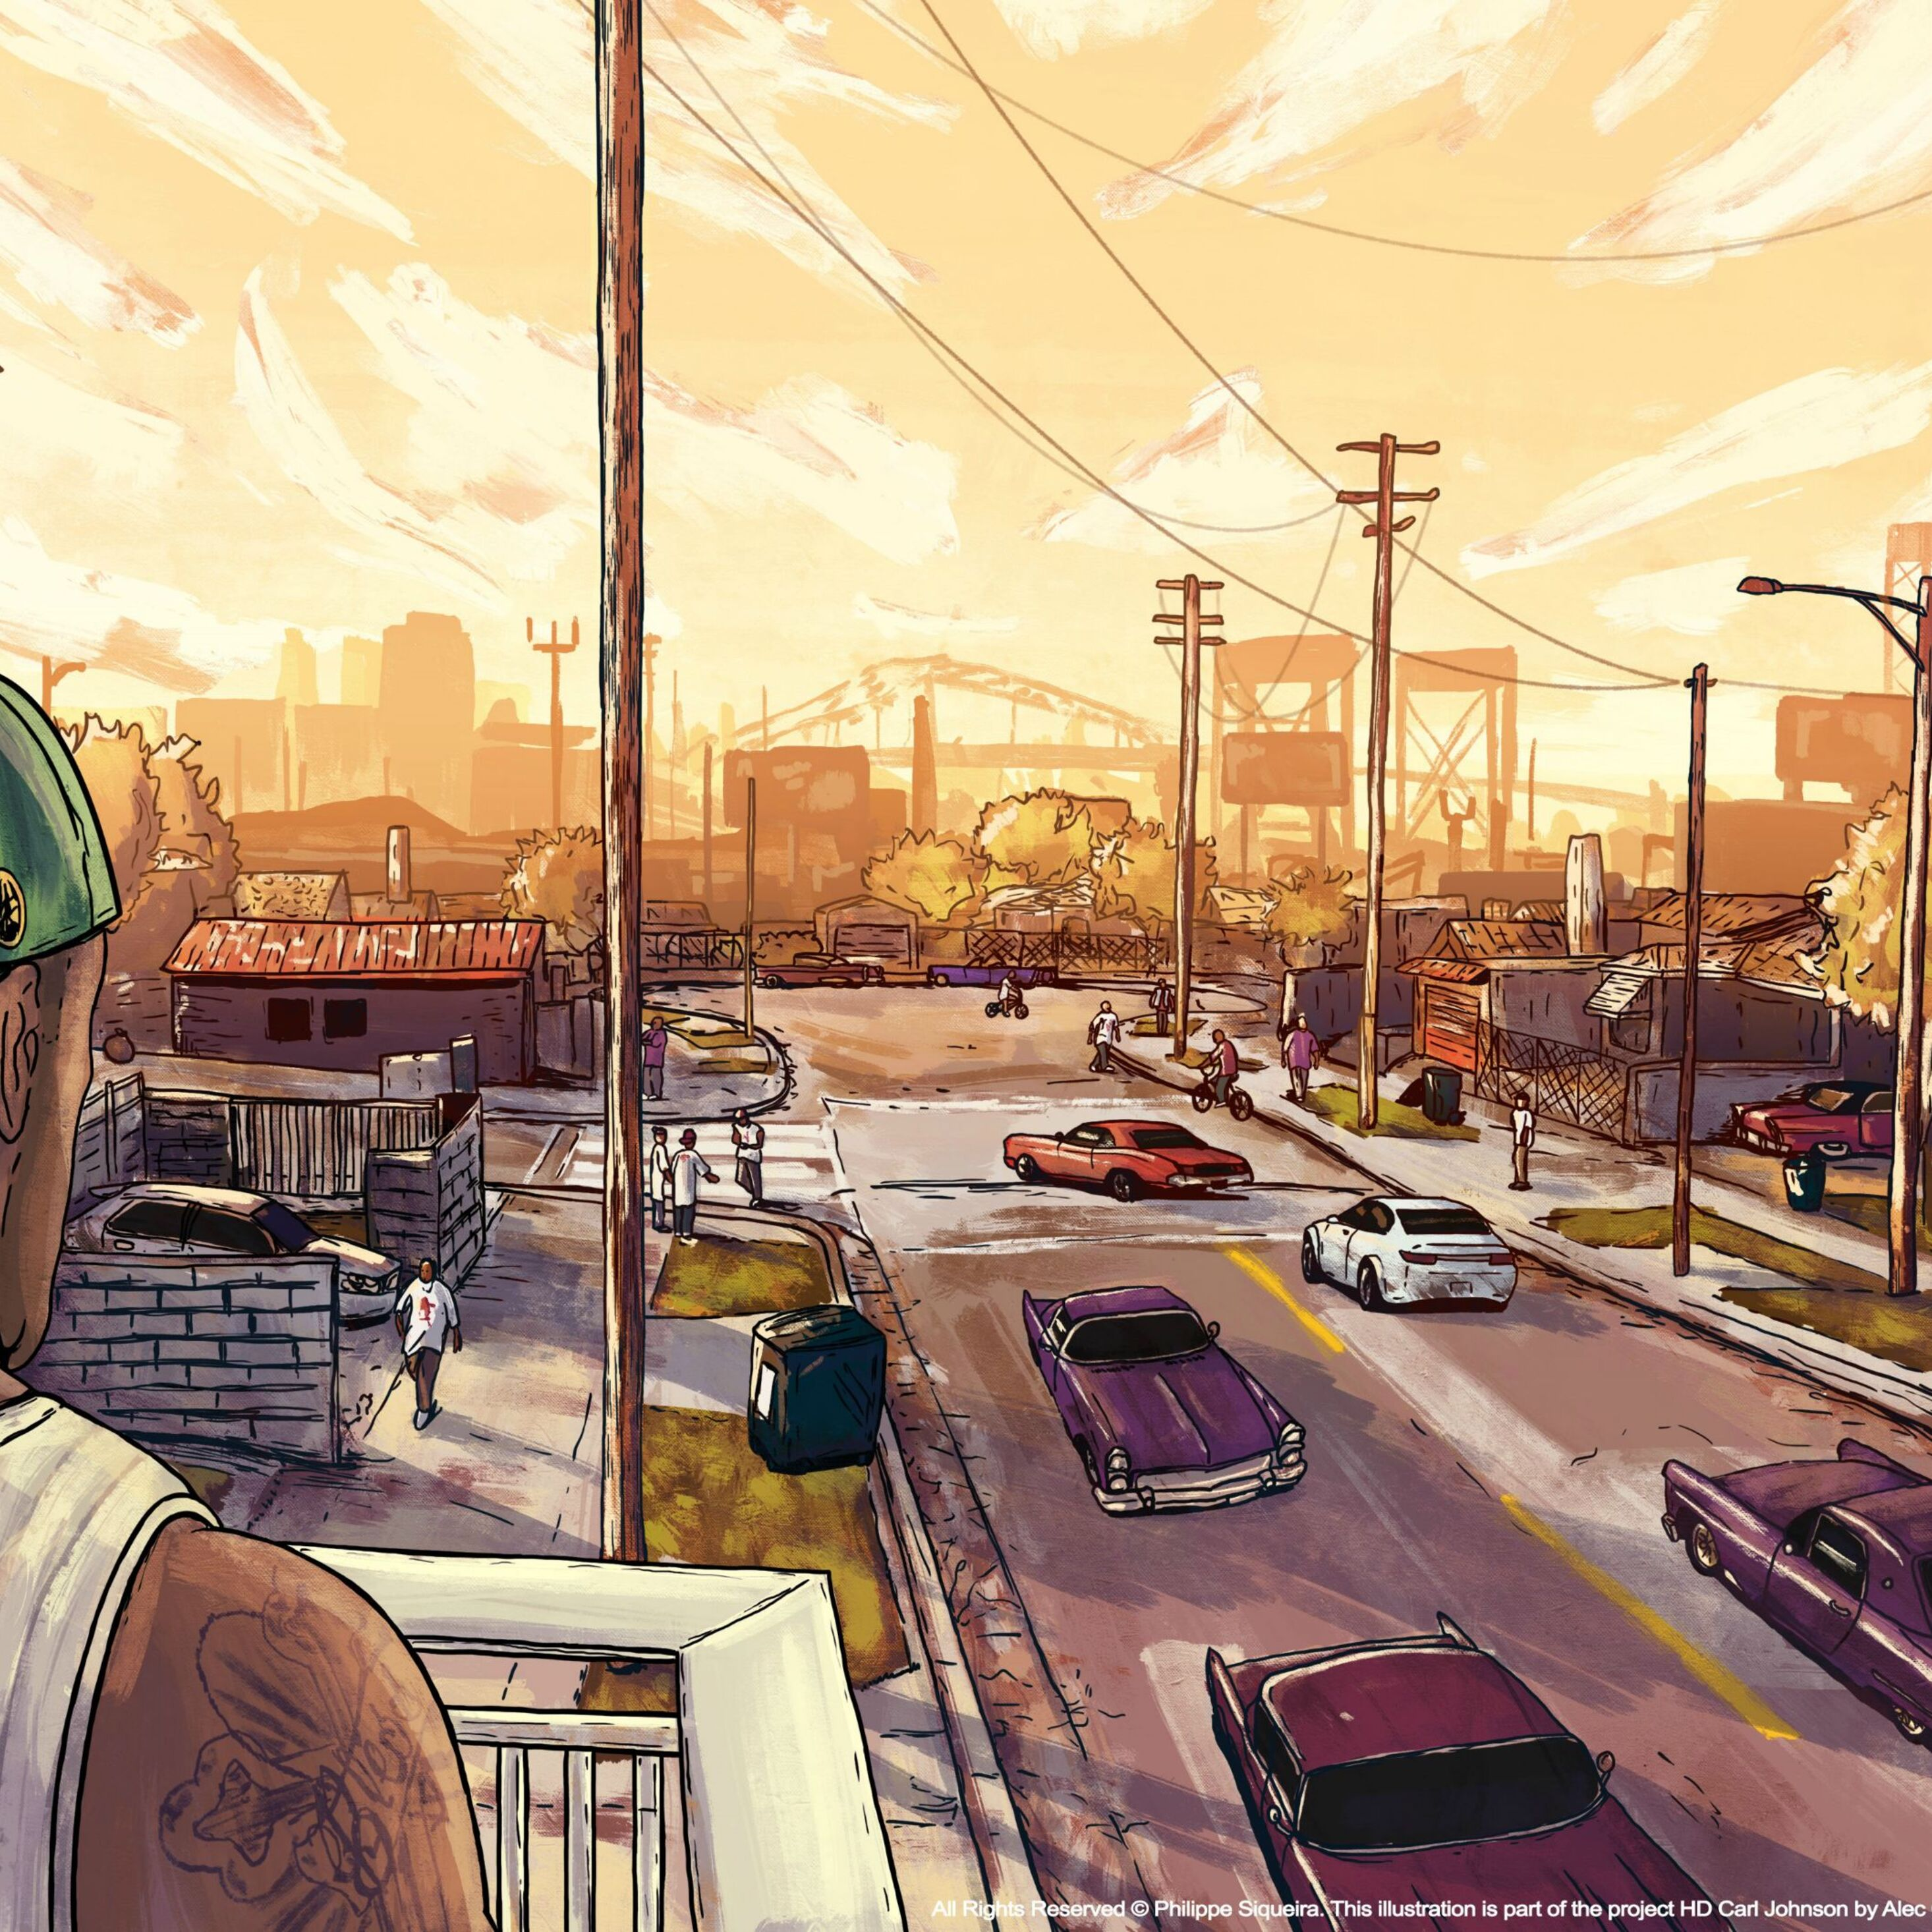 2932x2932 Gta San Andreas Artwork Ipad Pro Retina Display